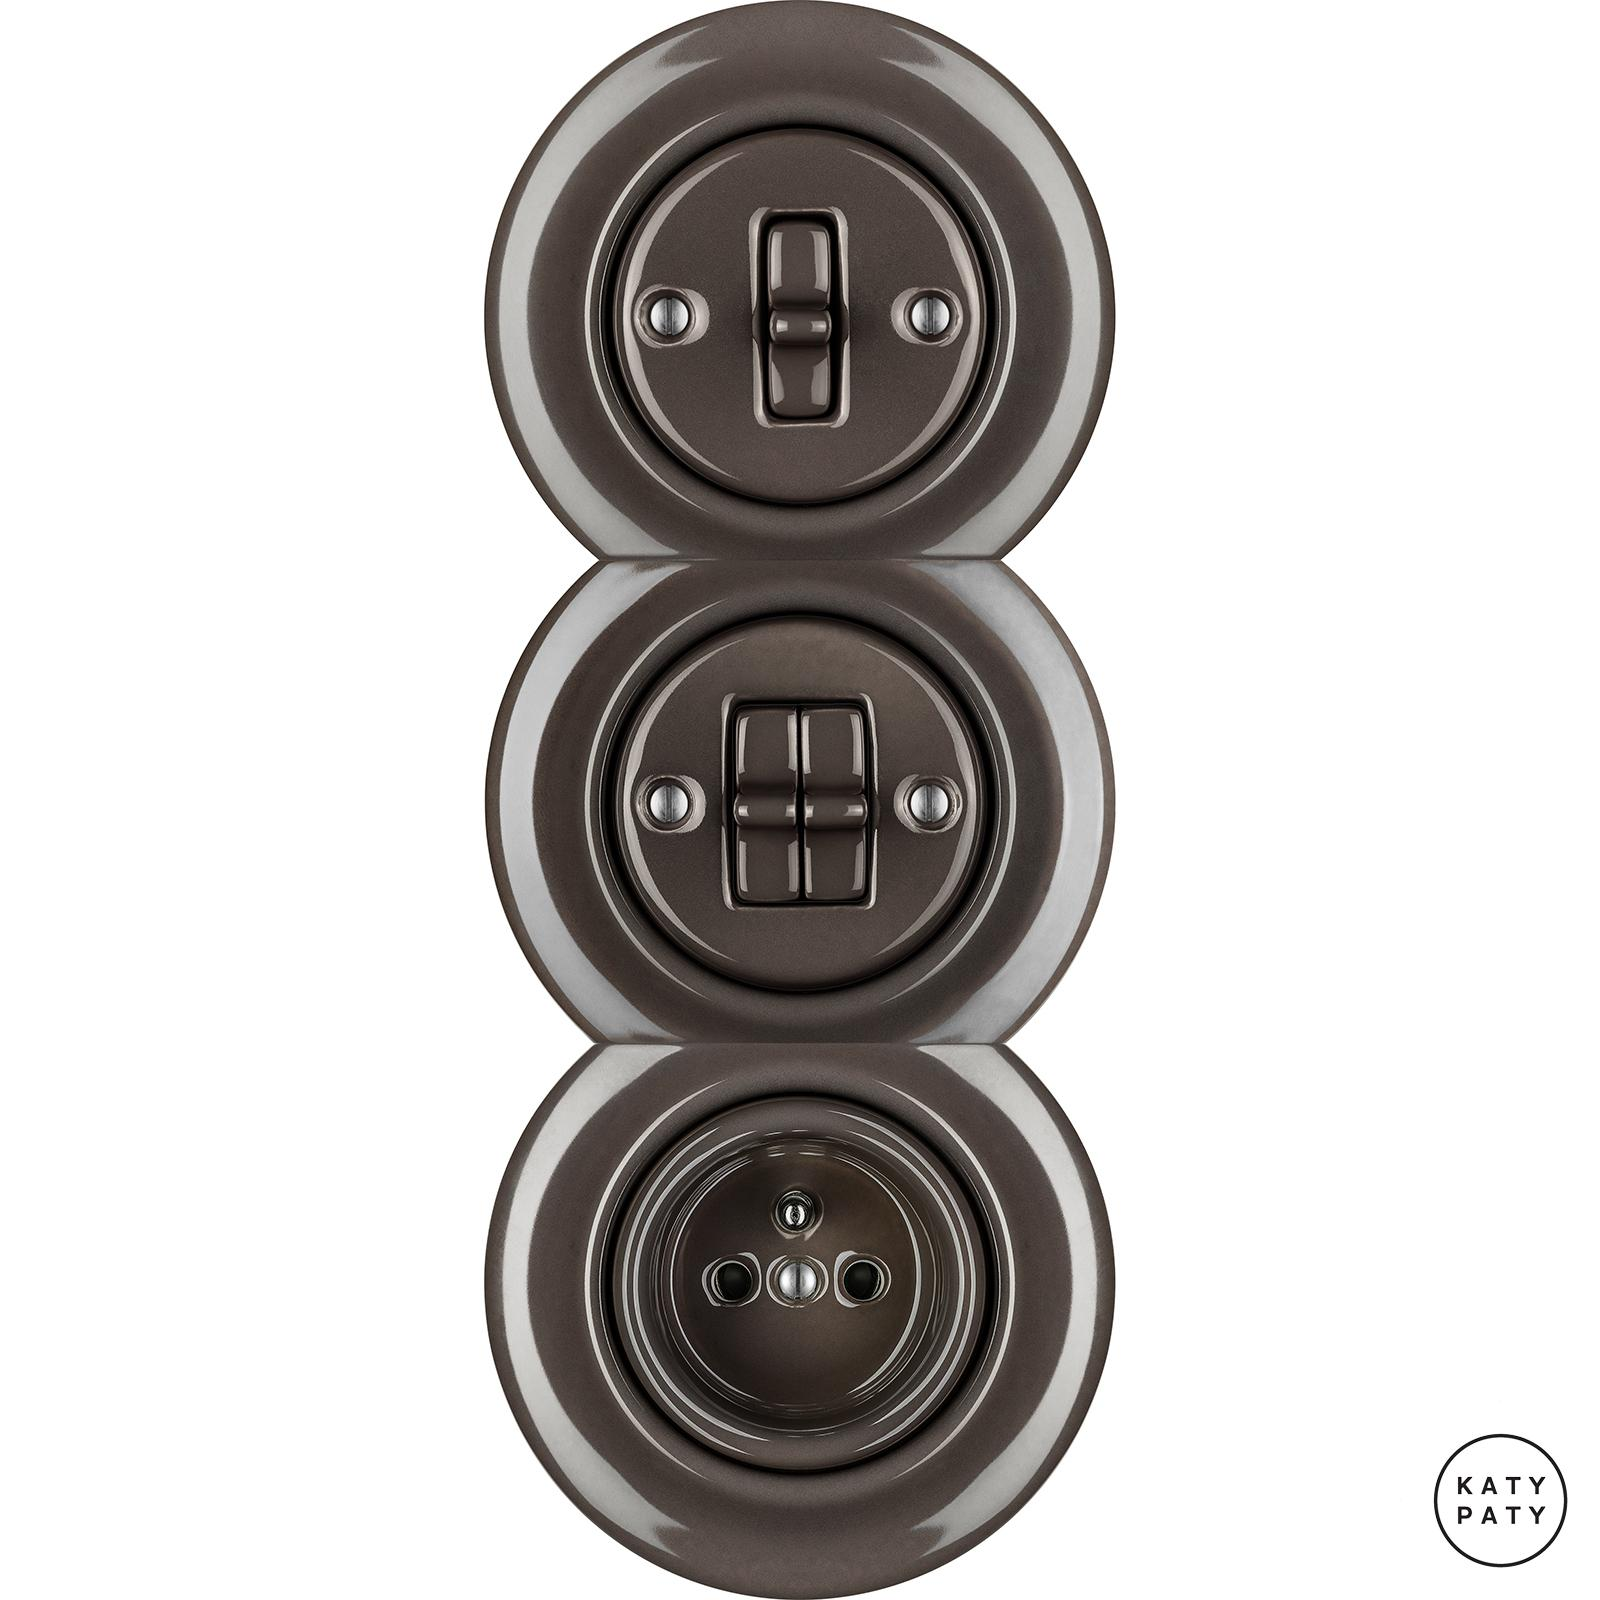 Porcelain switches - a single gang - SLIM - multiple X ()  - BRUNETUM | Katy Paty